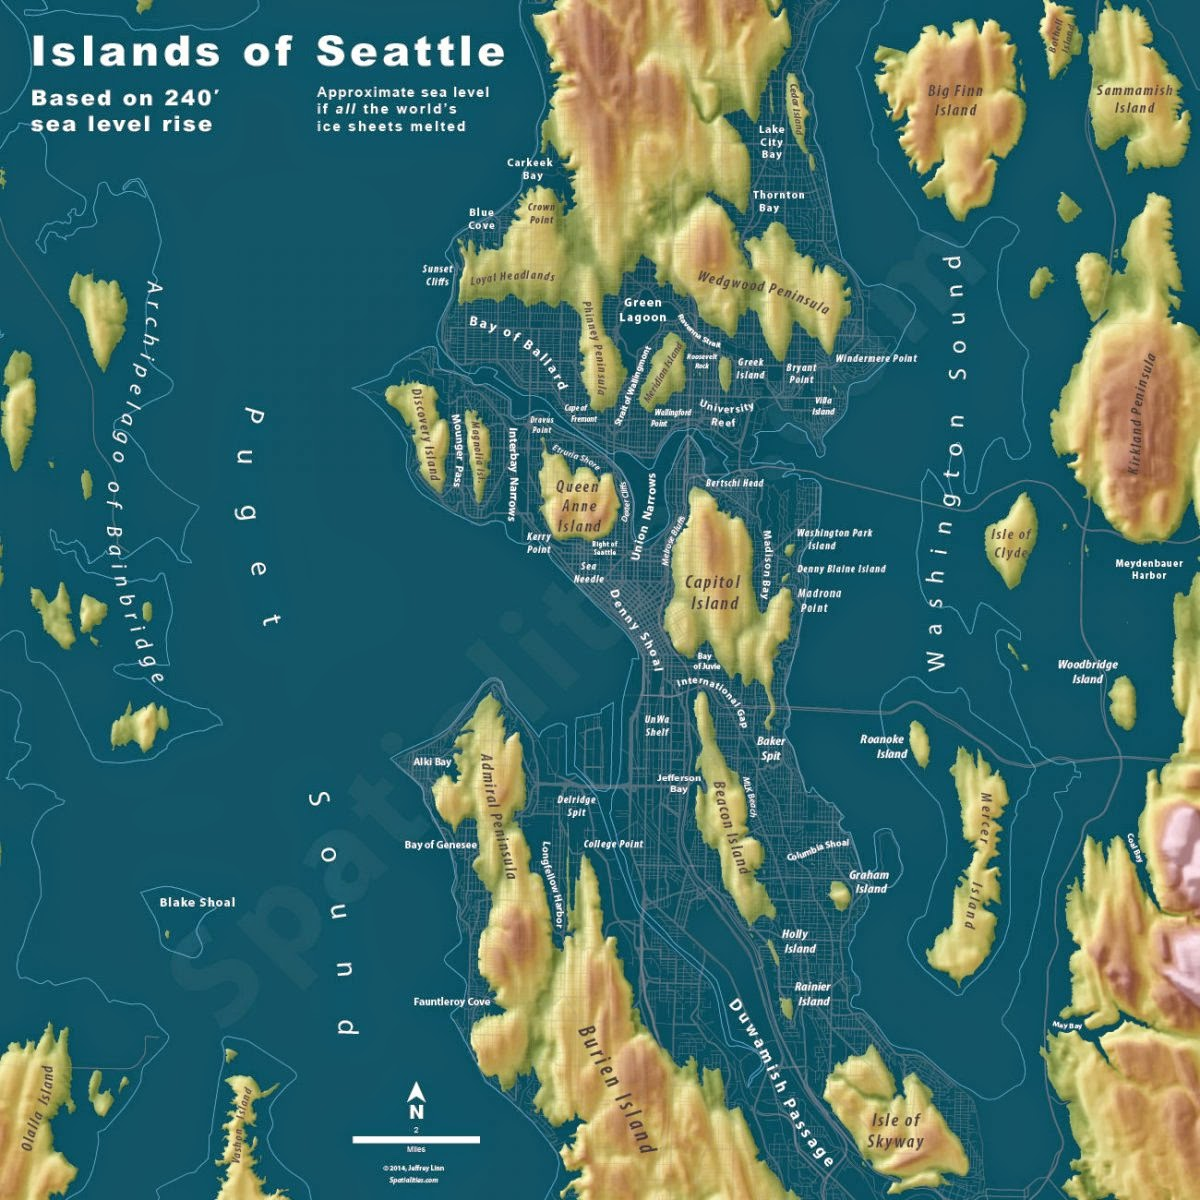 Island of Seattle.